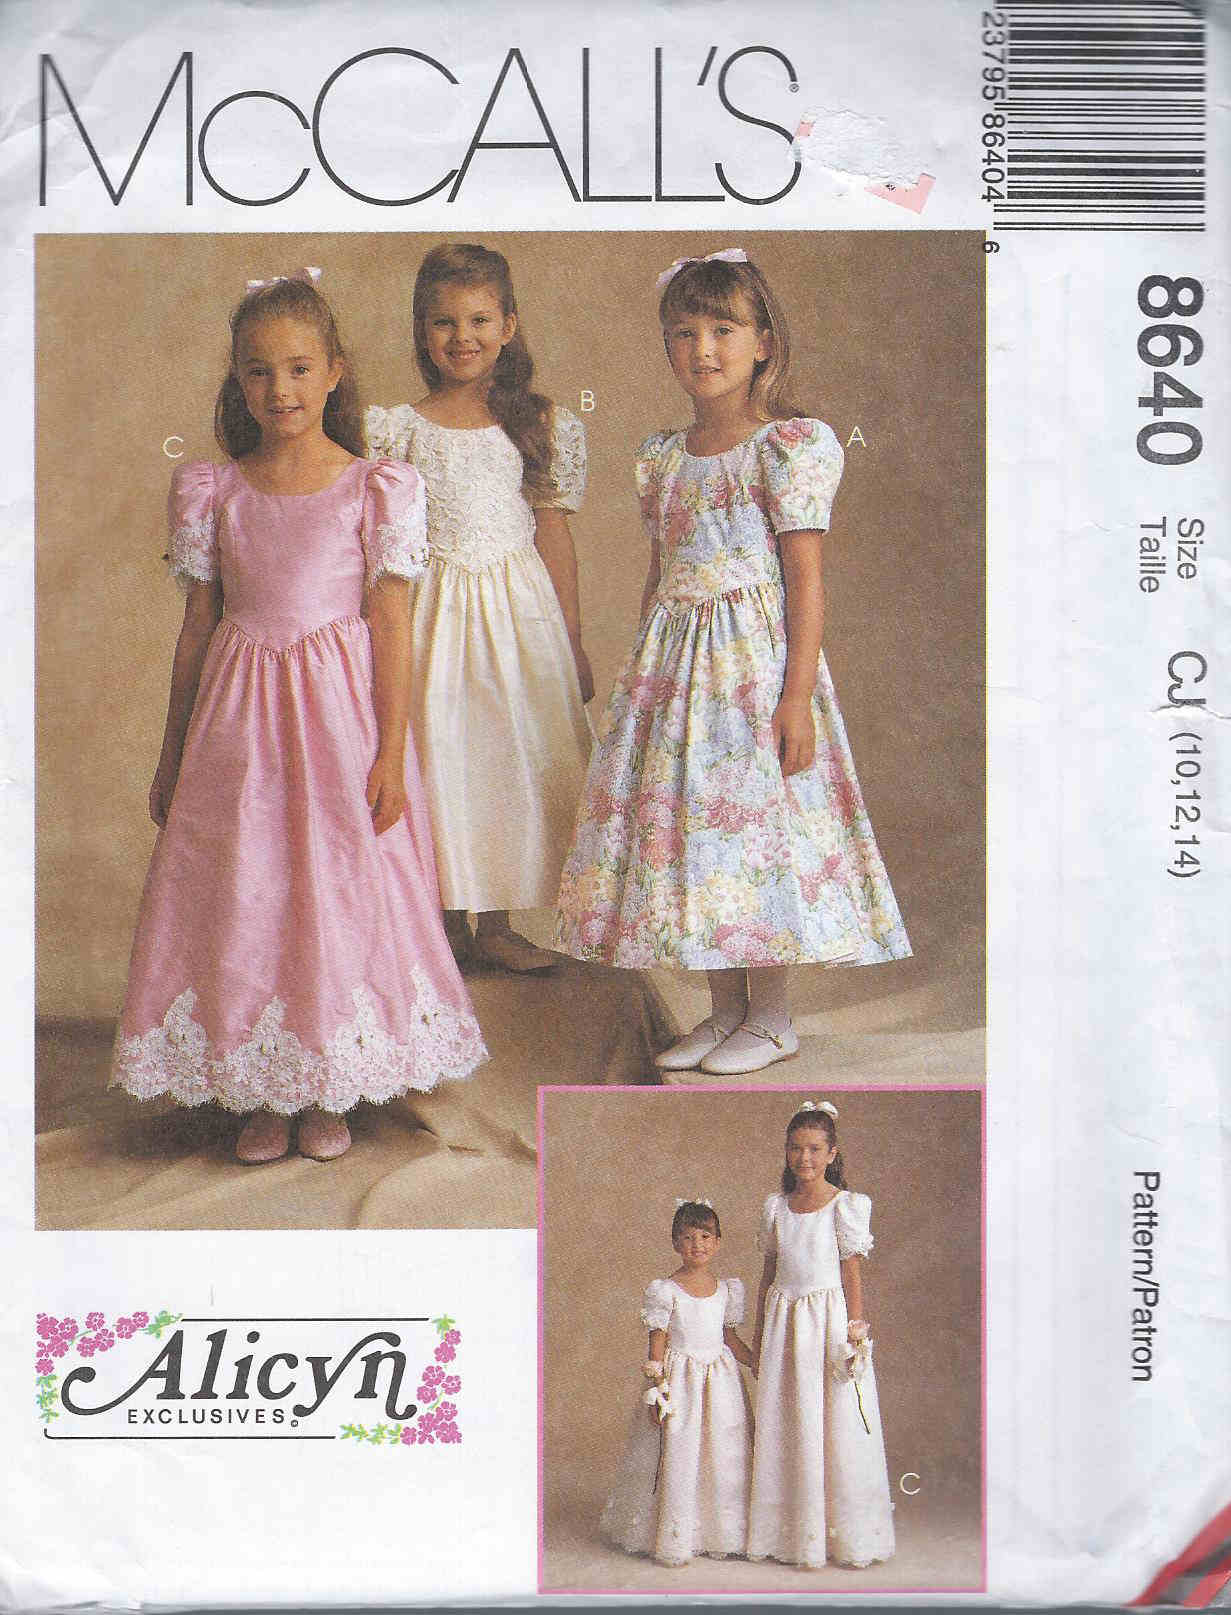 Alicyn Exclusives flower girl dress sewing pattern